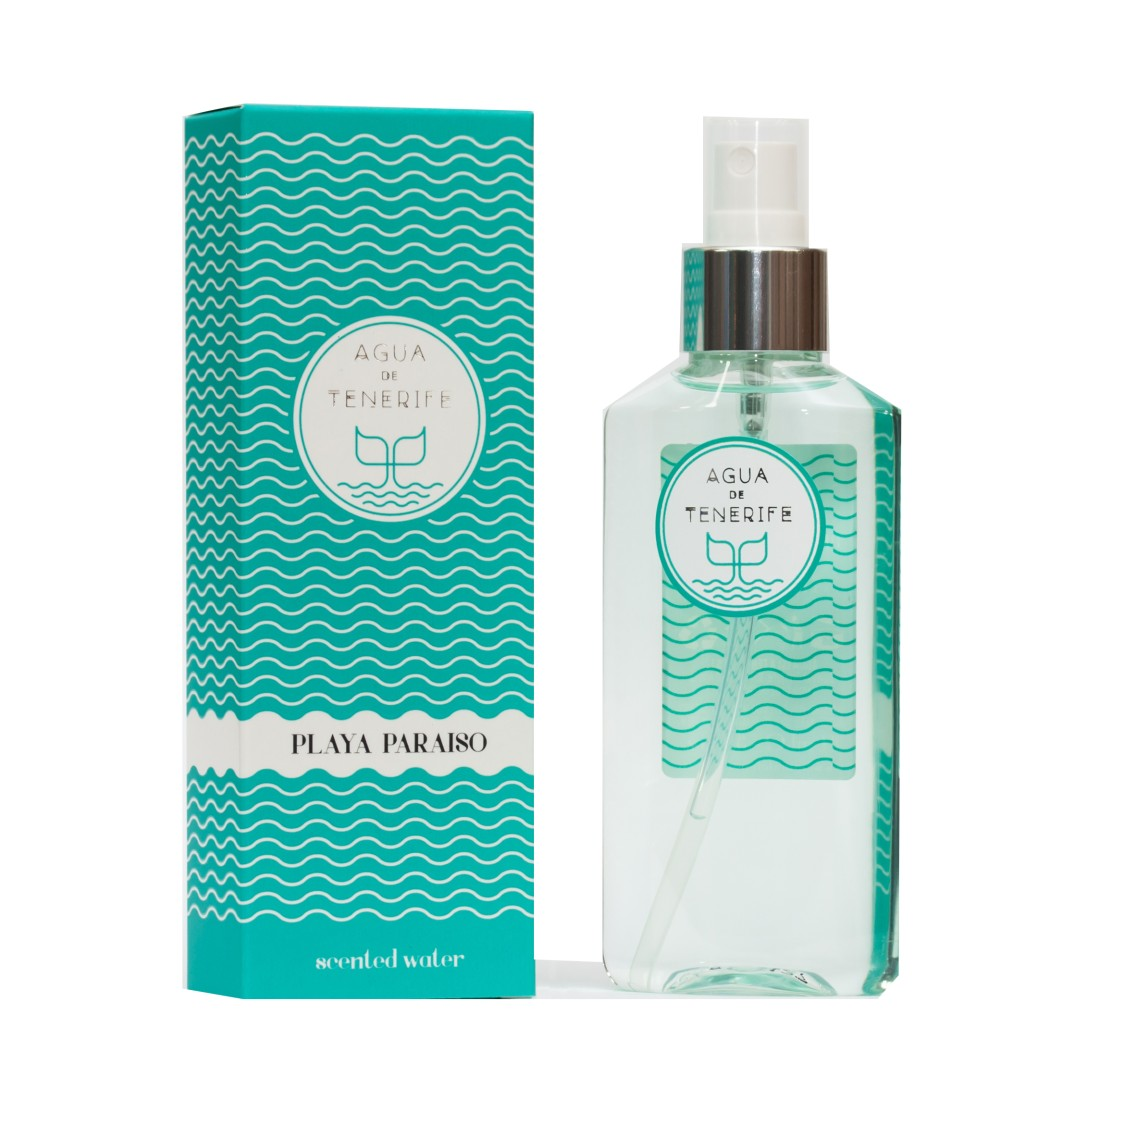 shop Agua de Tenerife  LAS FRAGANCIAS DE LA ISLA: Playa Paraiso Scented Water 100 ml.